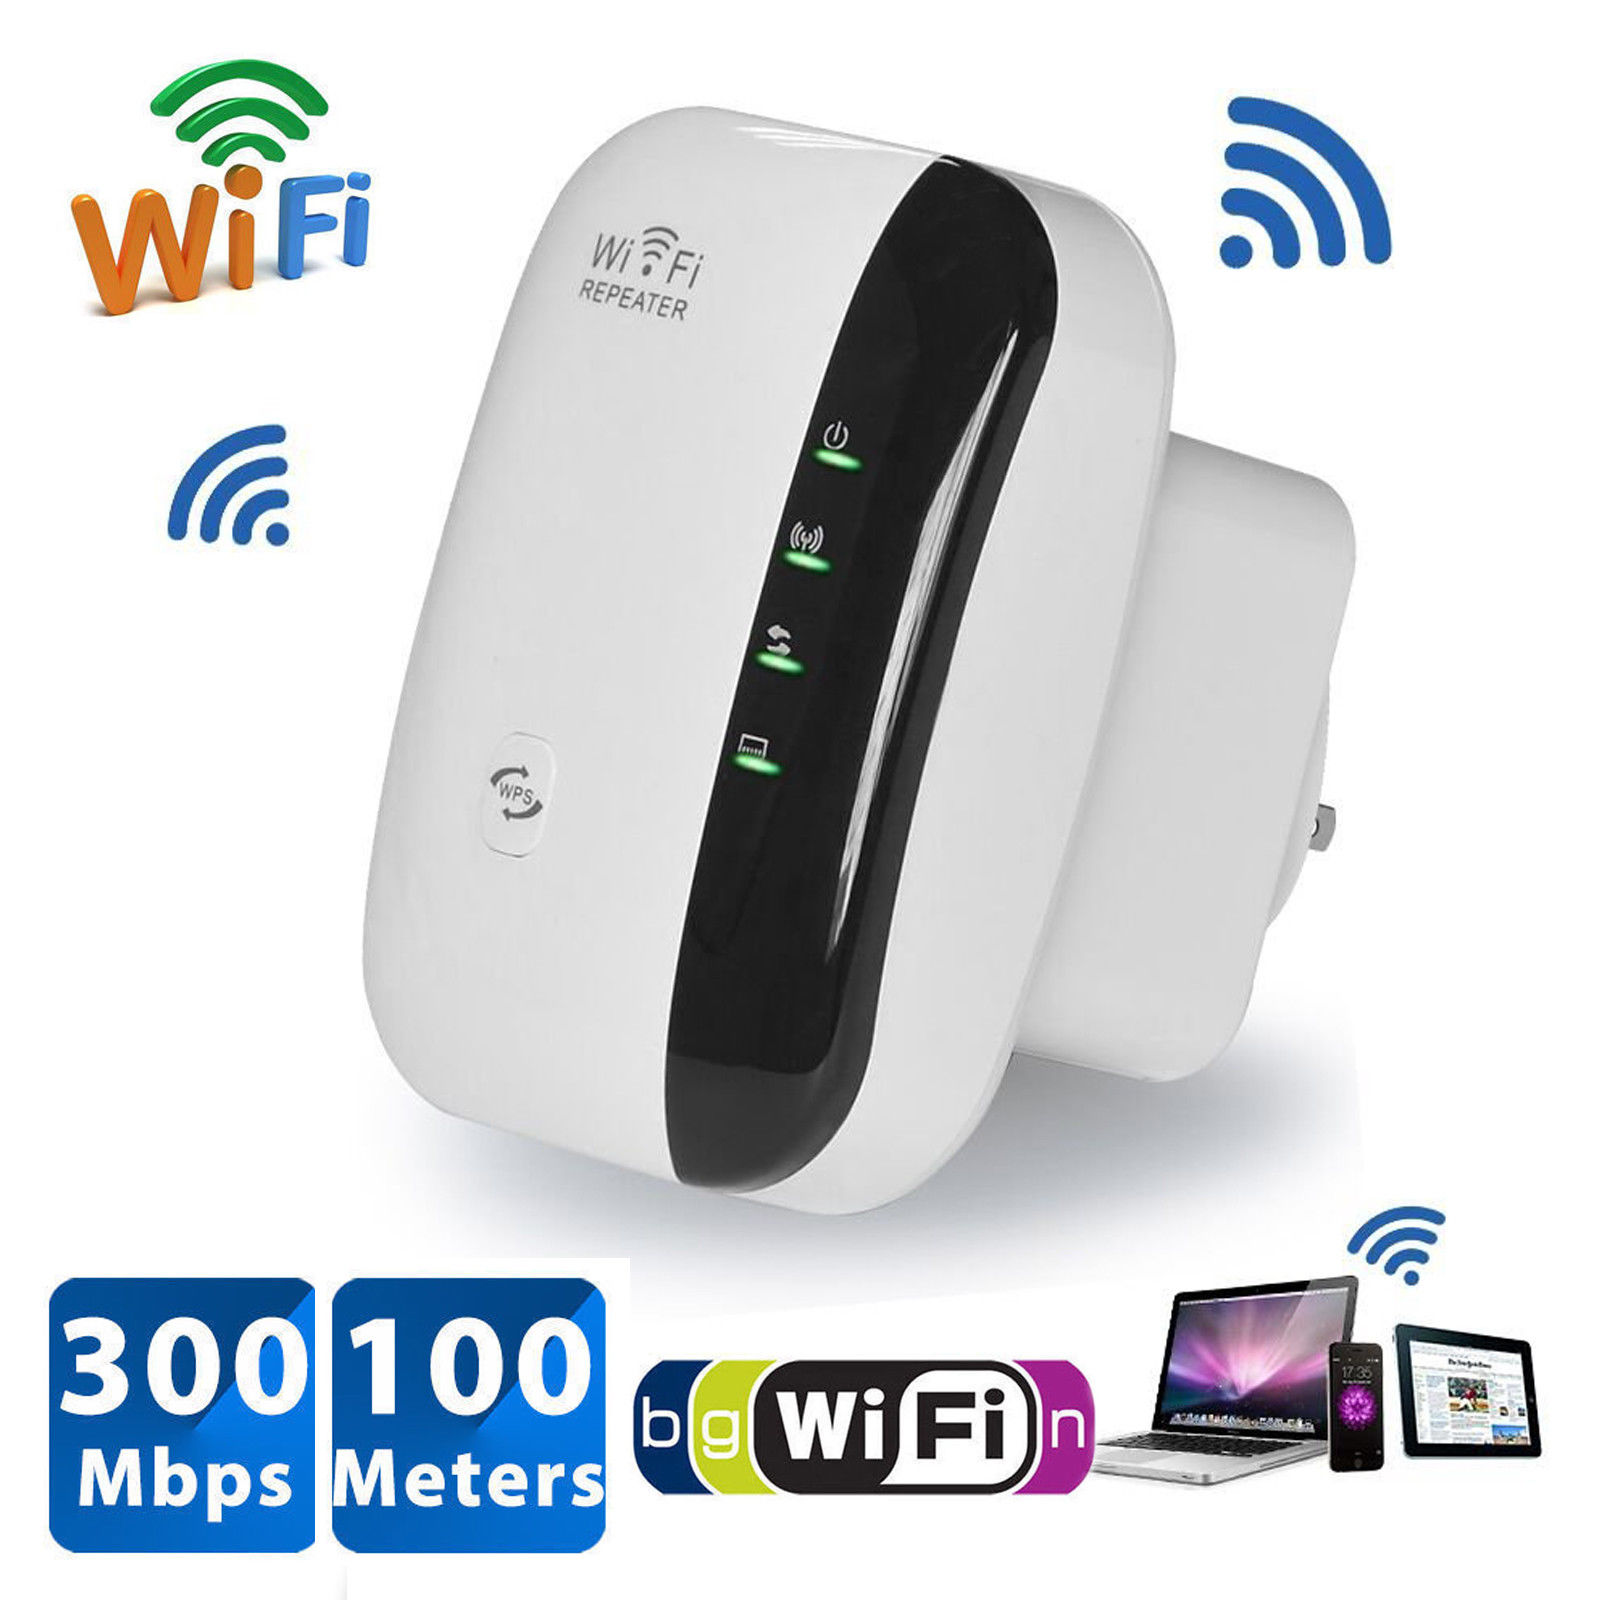 300Mbps-Wireless-N-AP-Range-802-11-Wifi-Repeater-Signal-Extender-Booster-US-Plug thumbnail 15